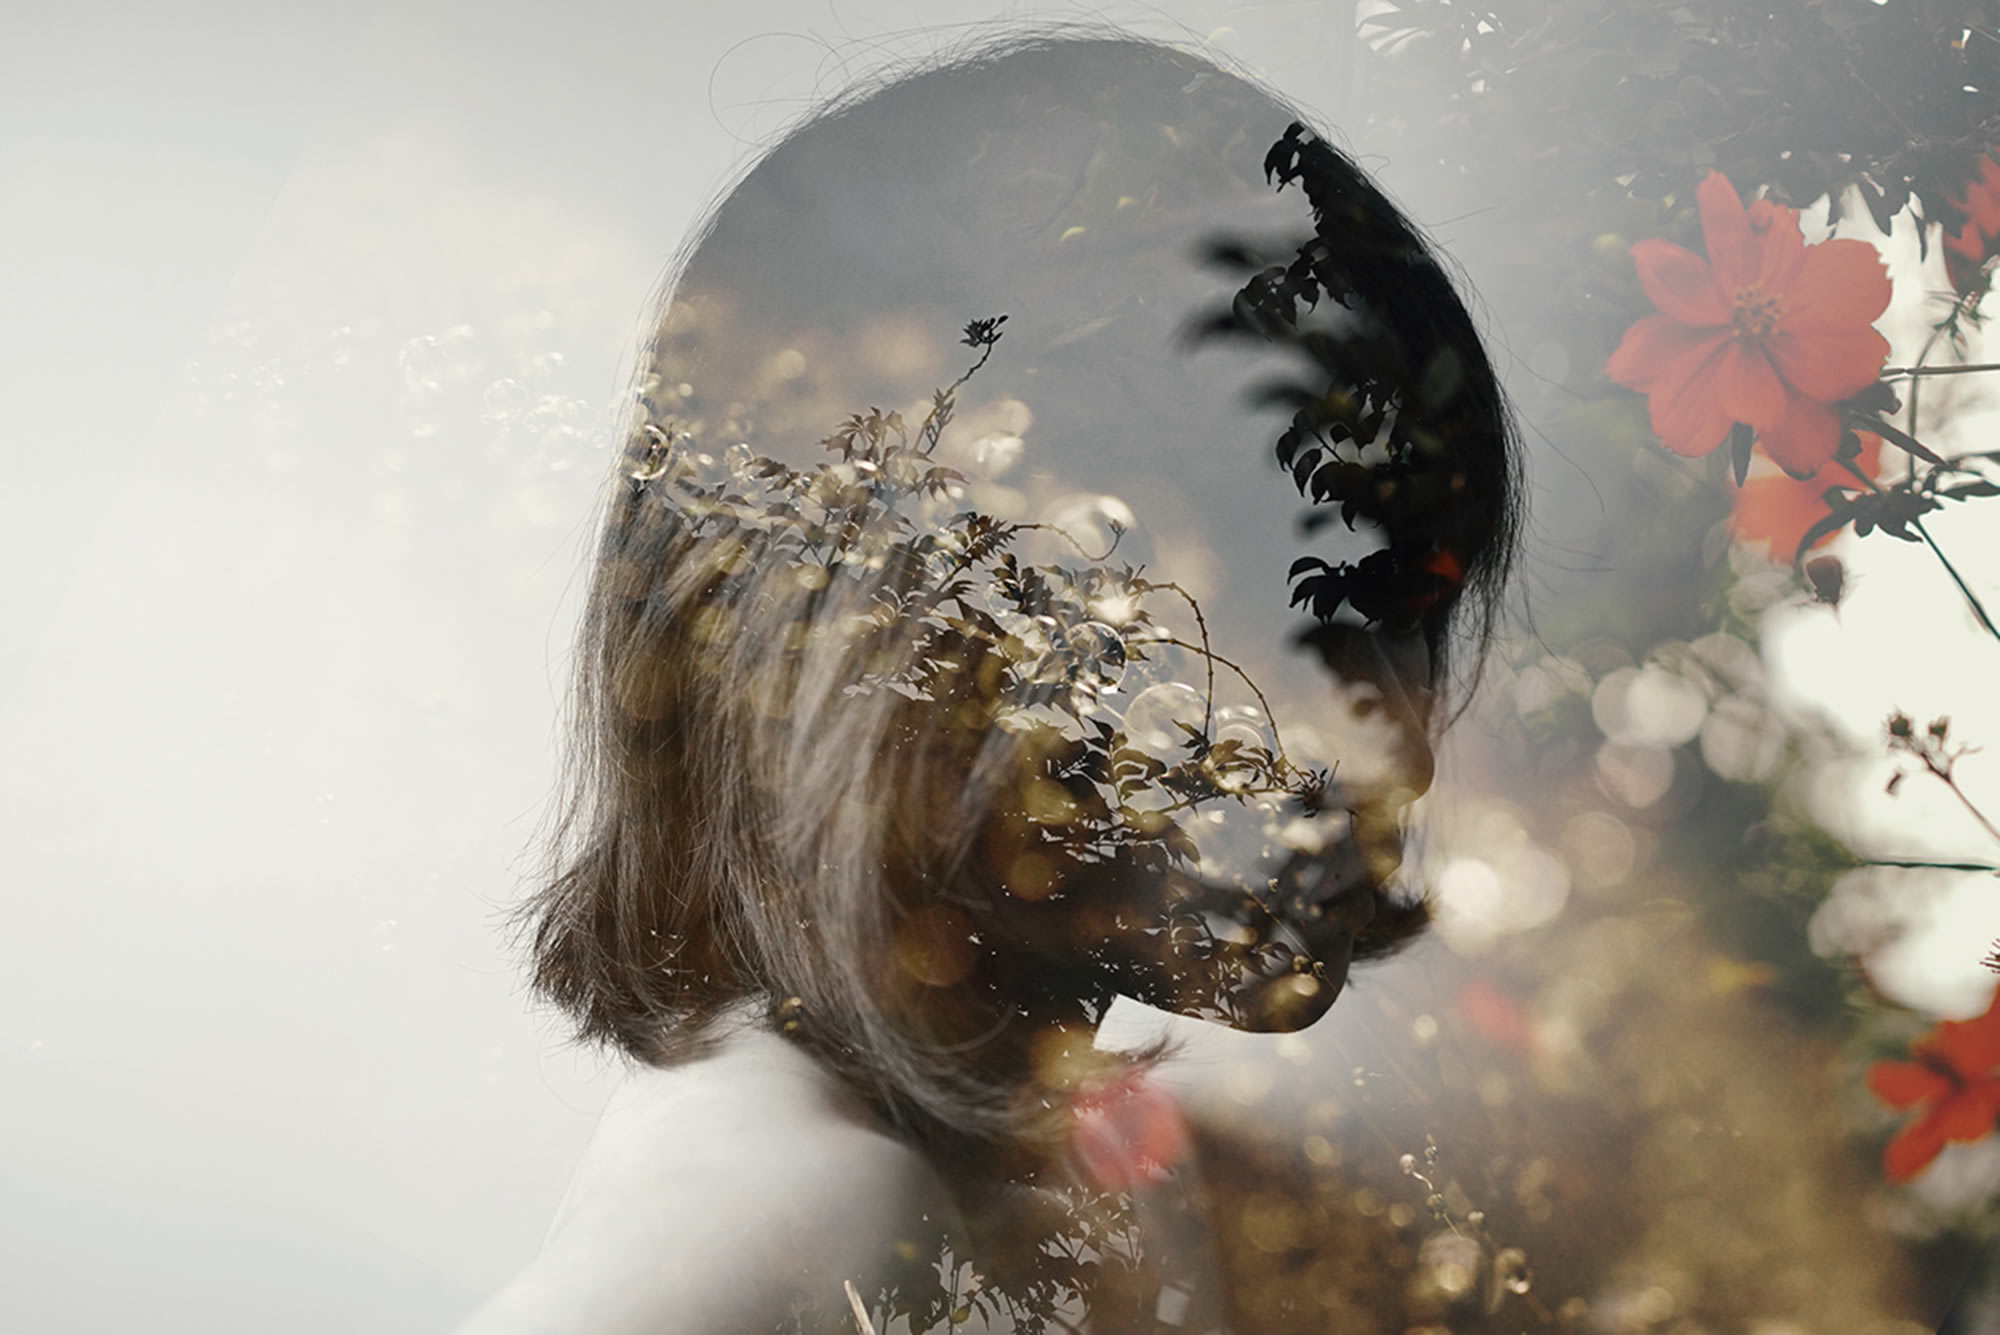 Tokyo-based Artist Miki Takahashi Launches New Double-Exposure Pics